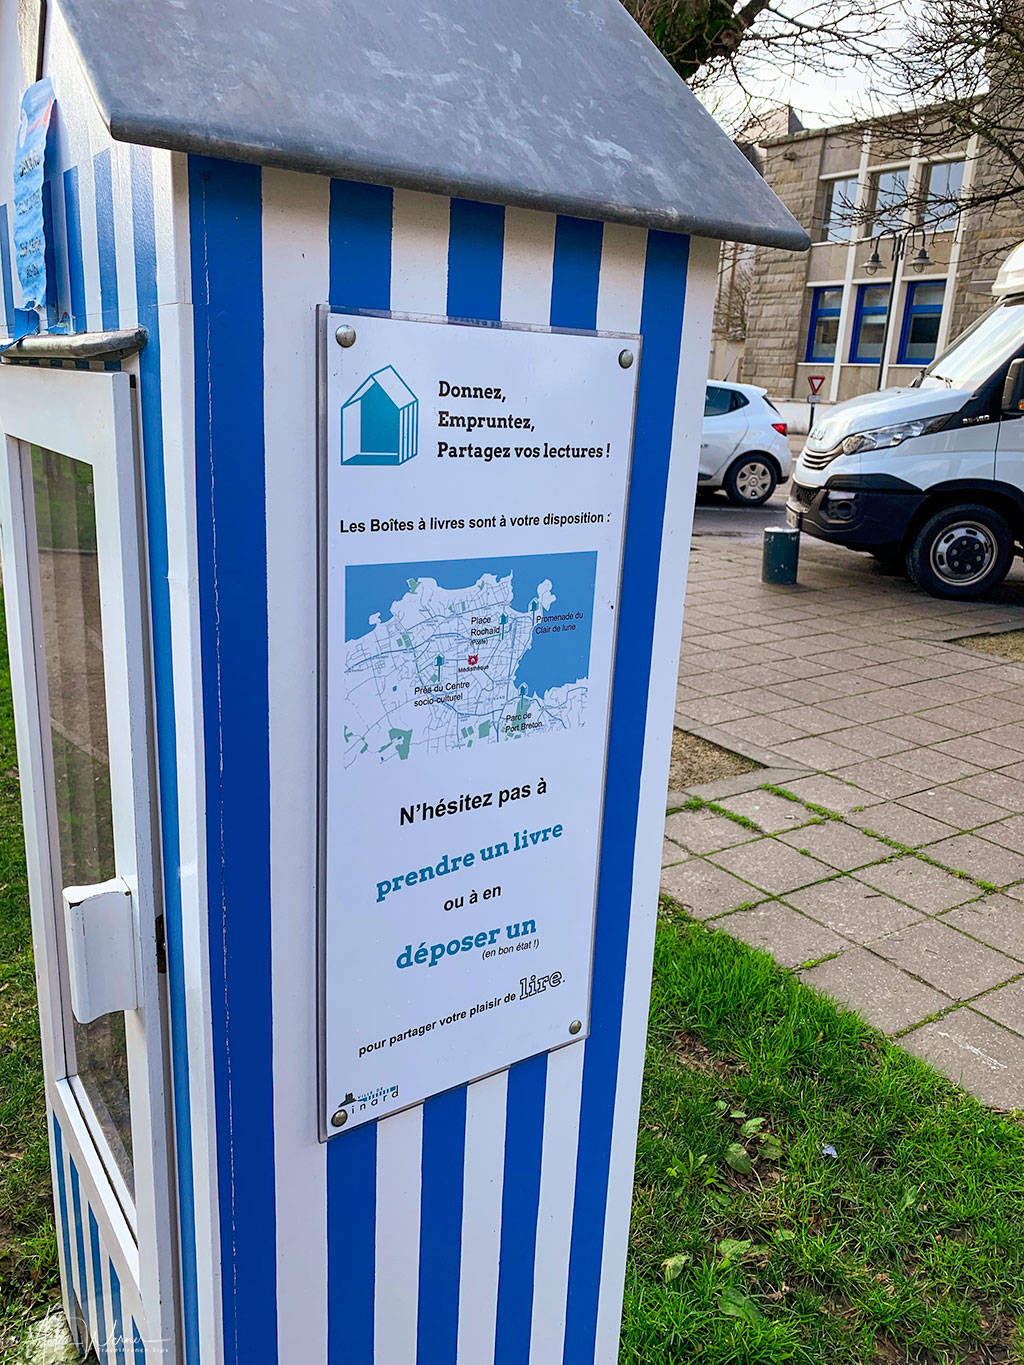 Instructions for using the mini public library of Dinard